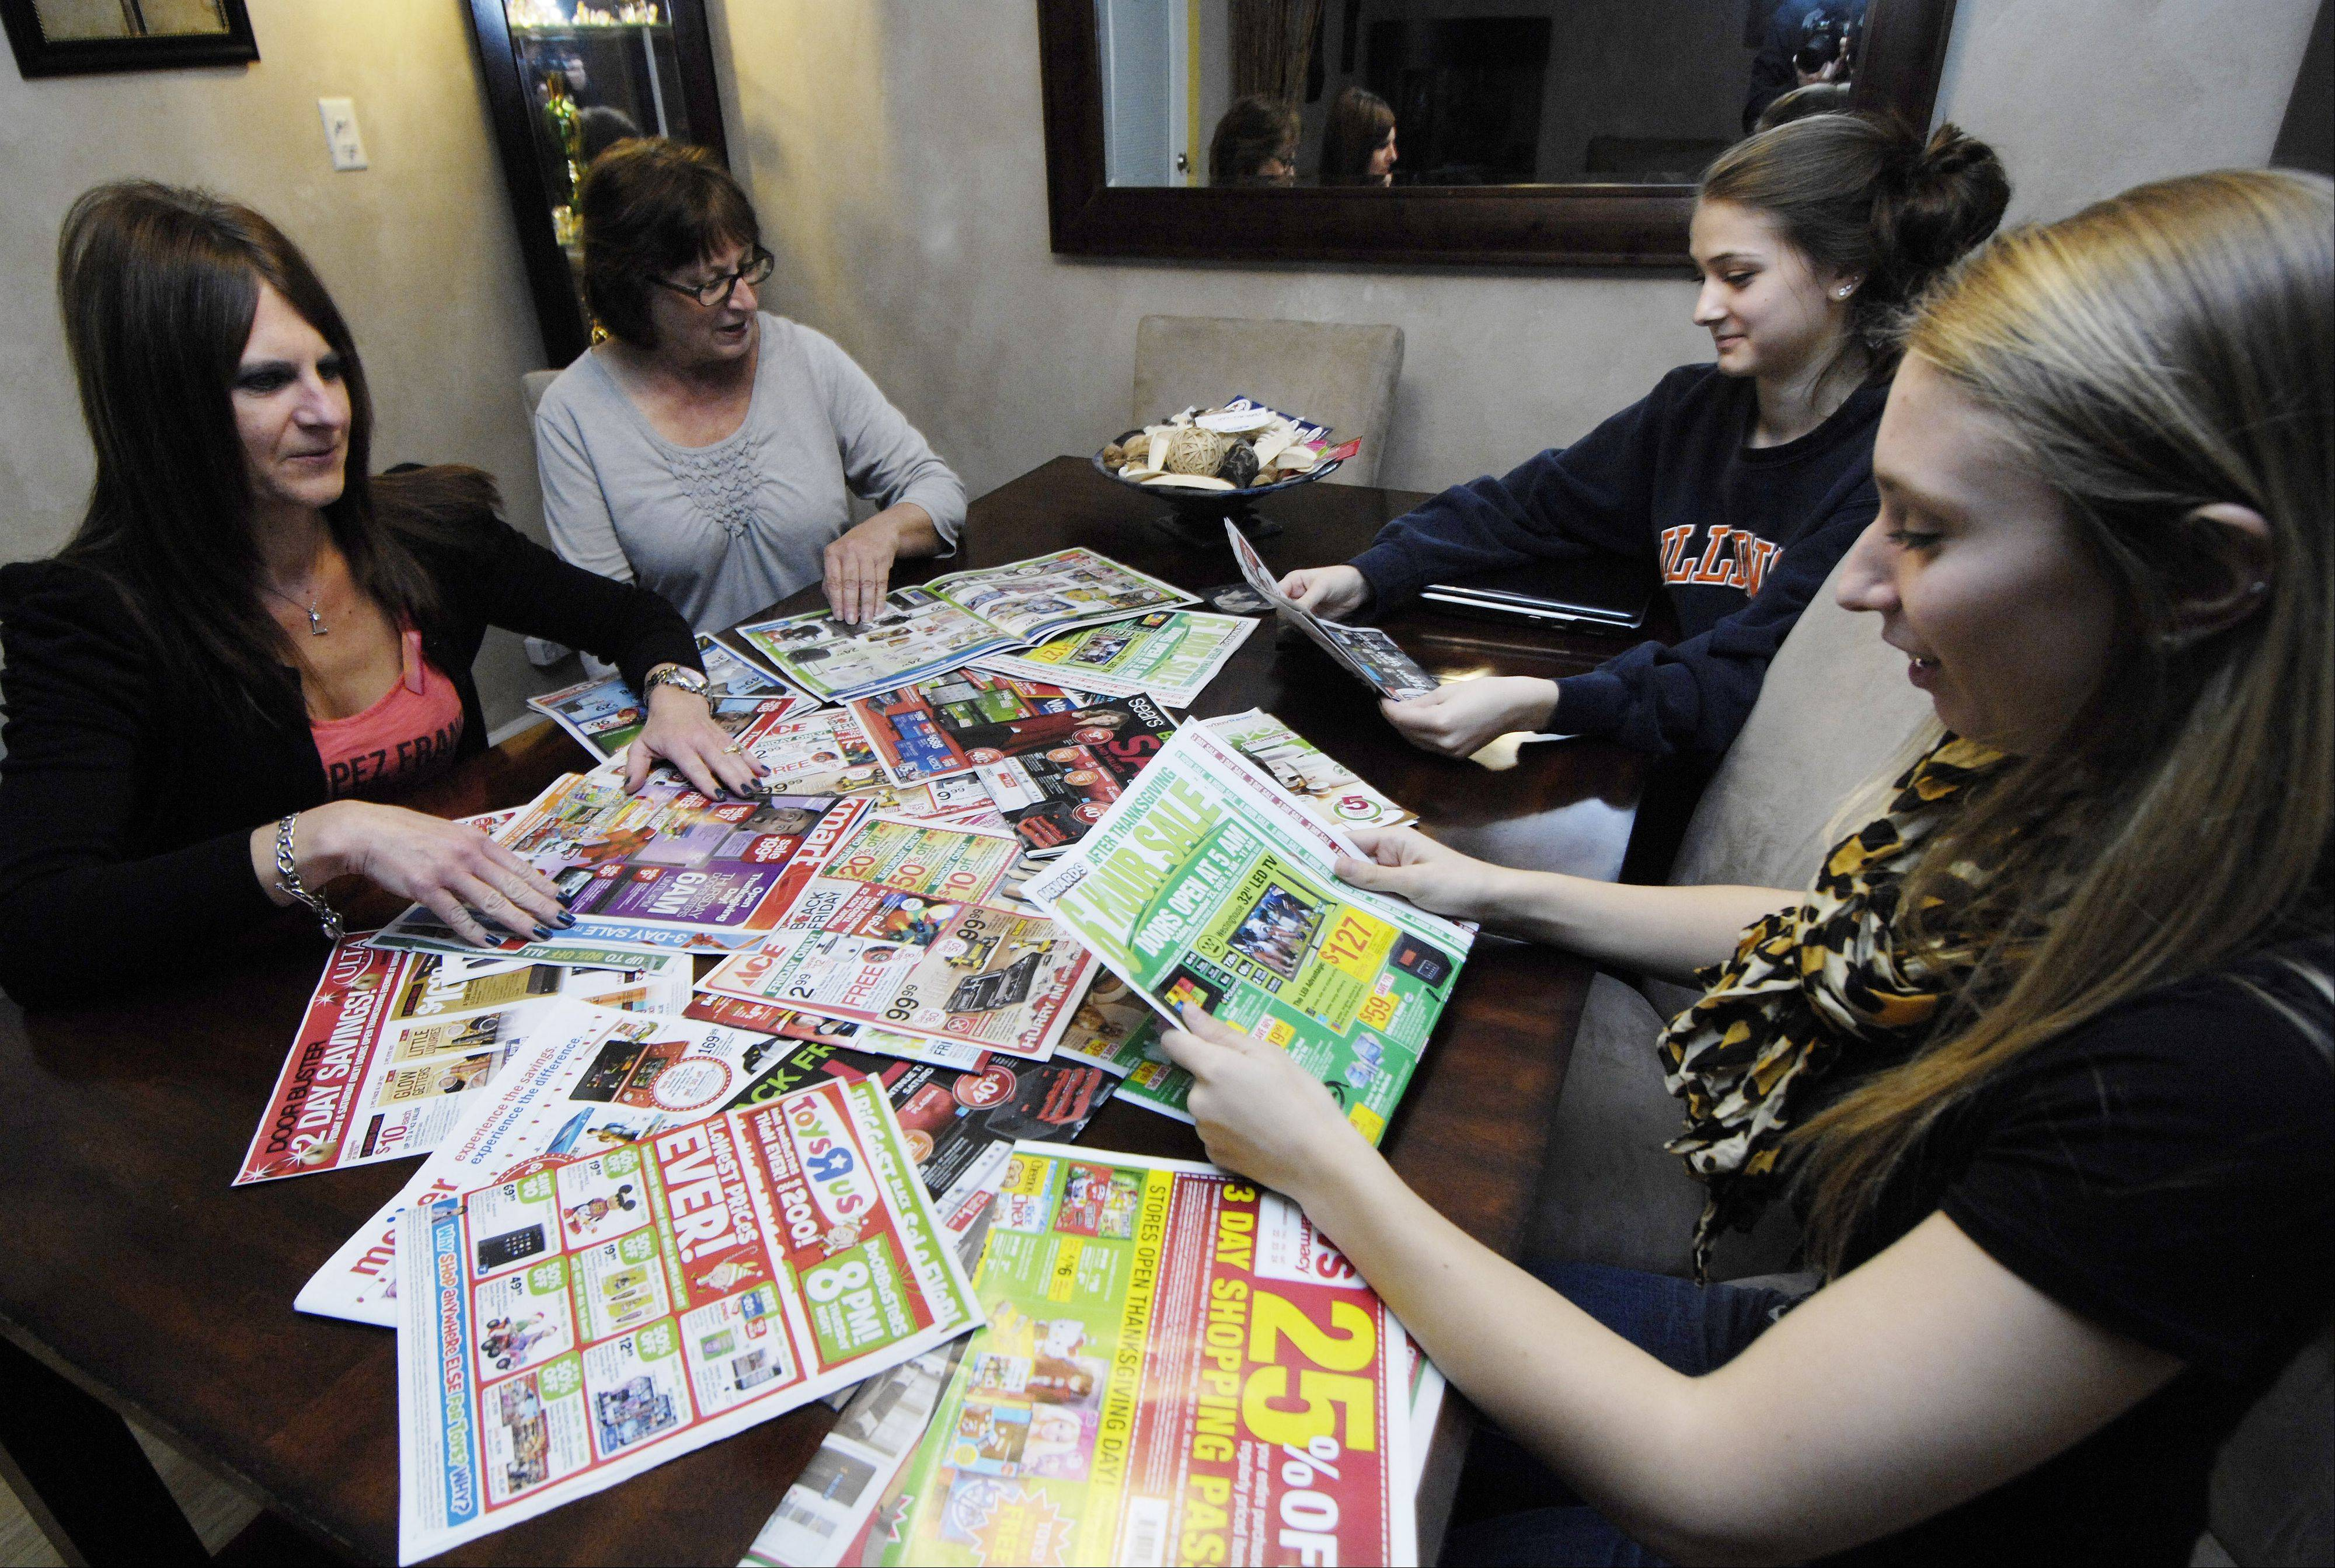 Clockwise from left, Laura Milman of Mount Prospect, her mom, Marge Grudzien of Niles, and her nieces Taylor and Natasha Tsinonis of Des Plaines go through the Black Friday ads in preparation for the big shopping day.